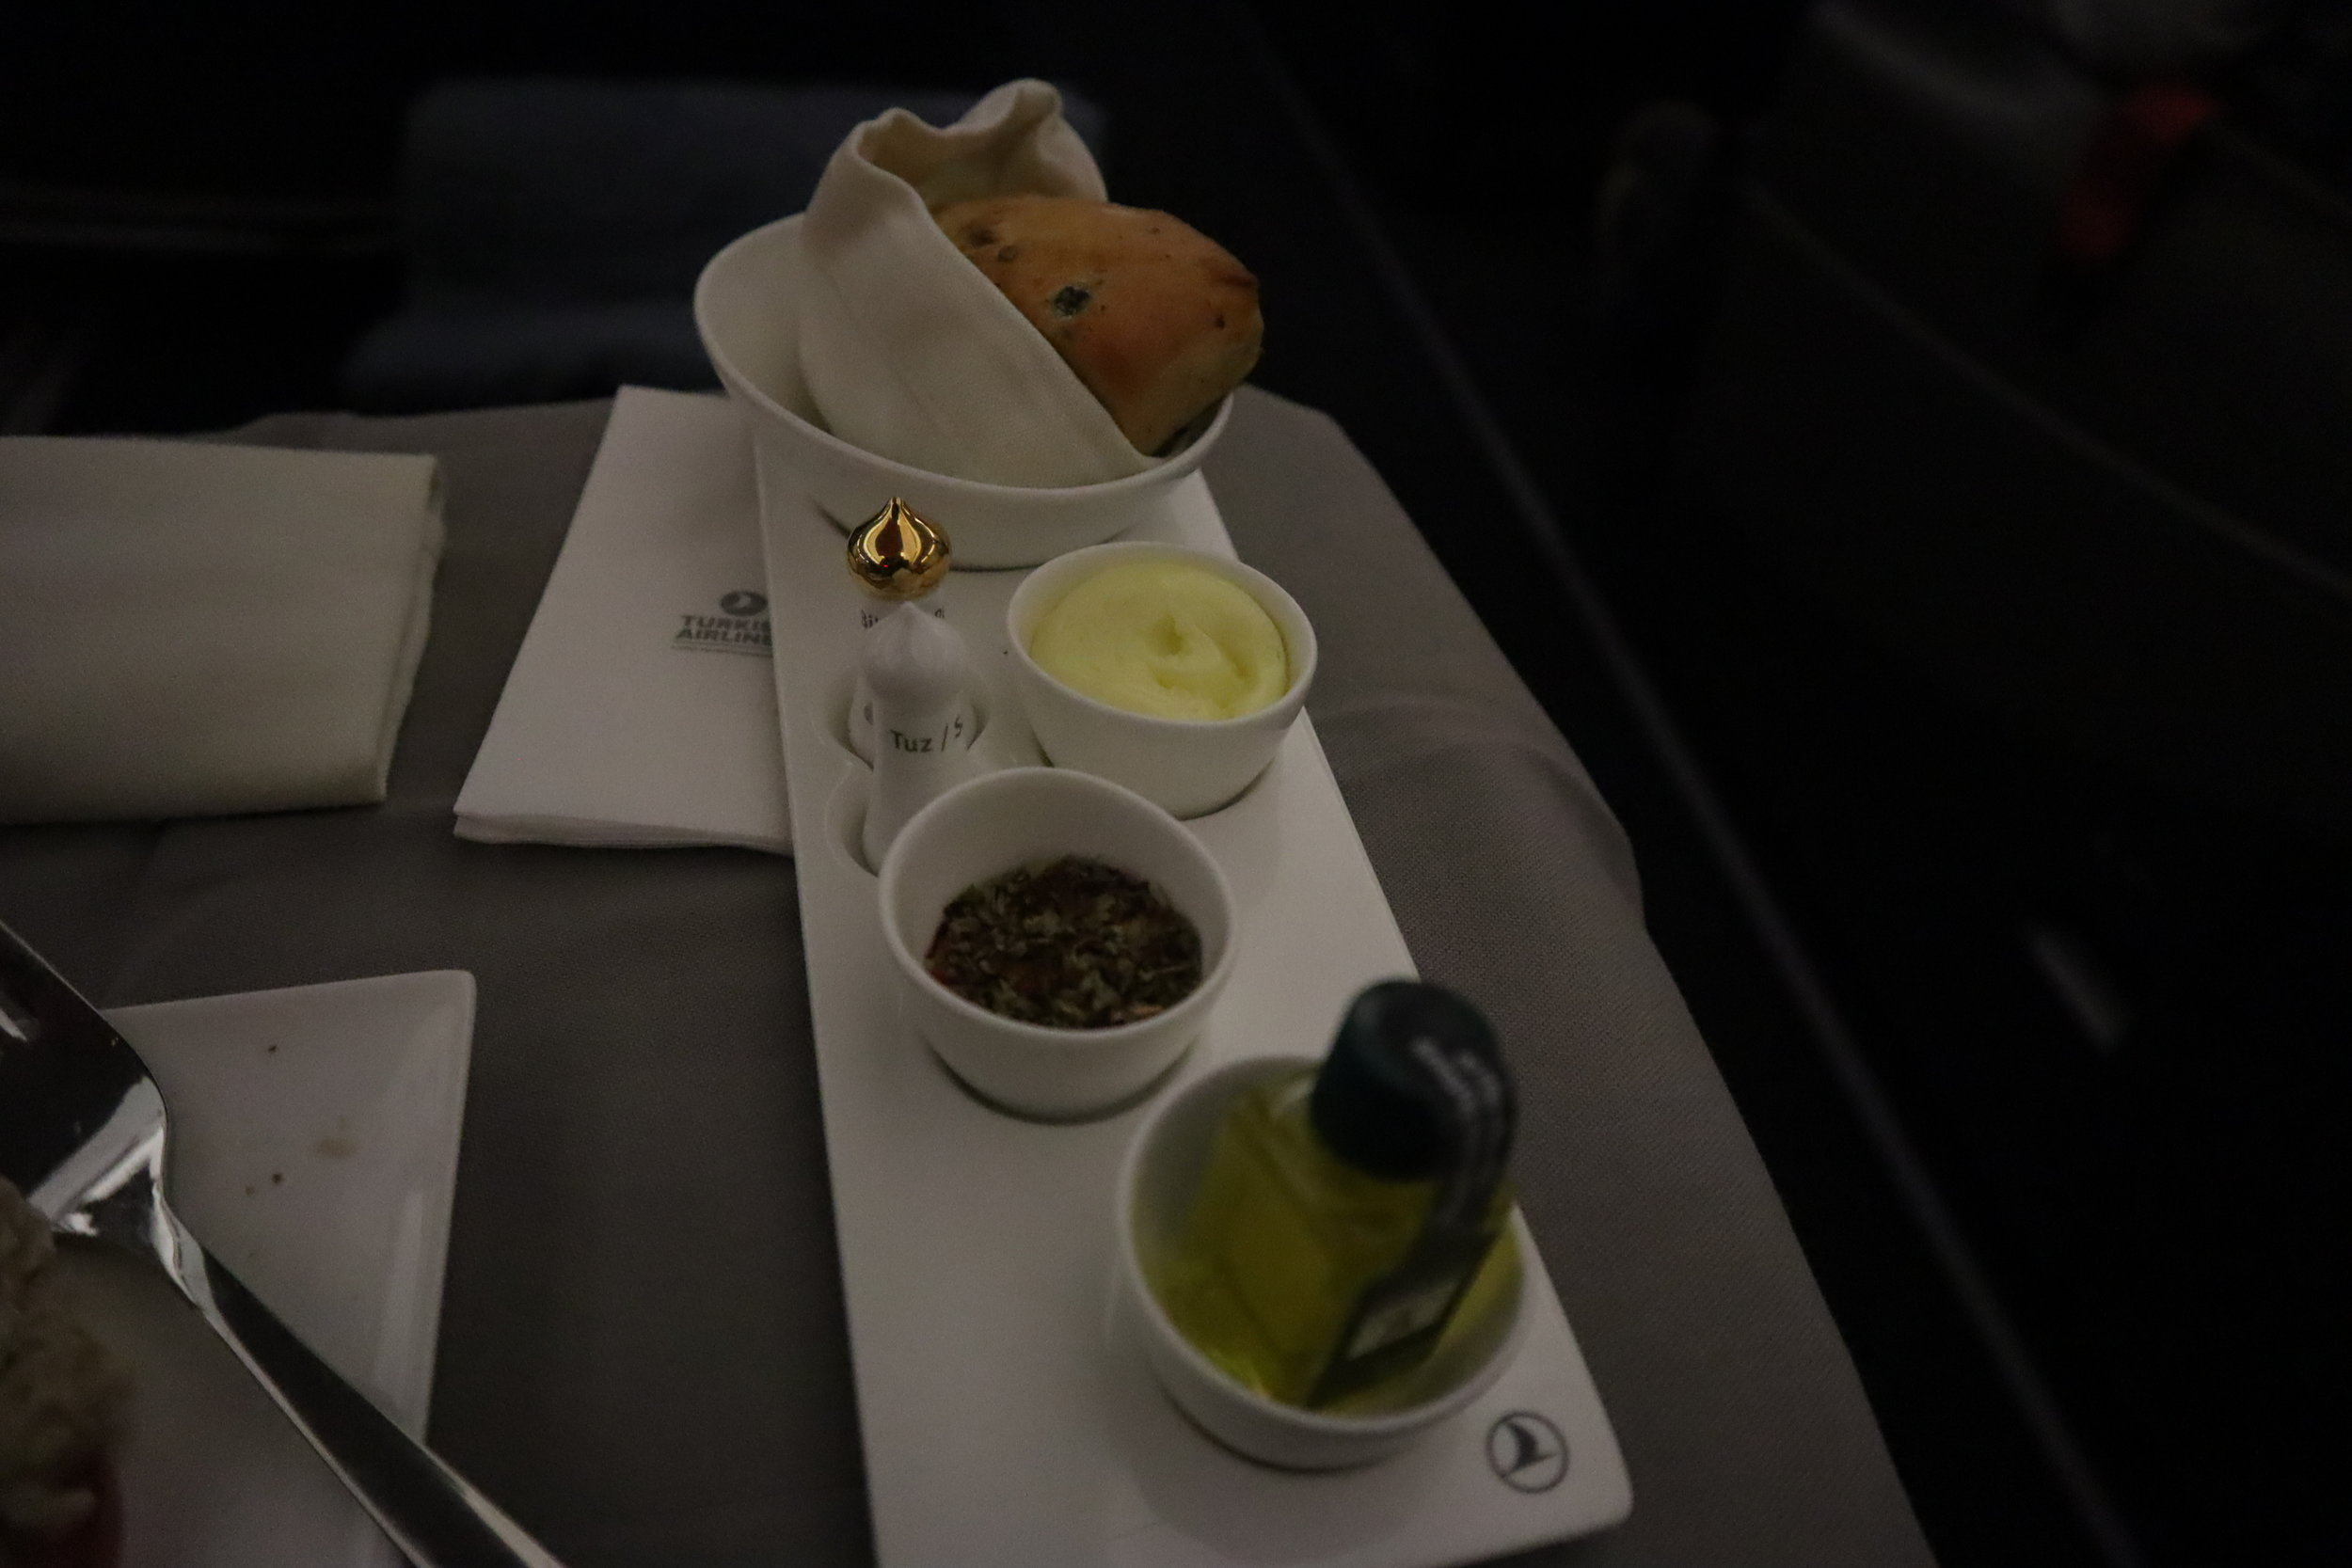 Turkish Airlines A330 business class – Bread